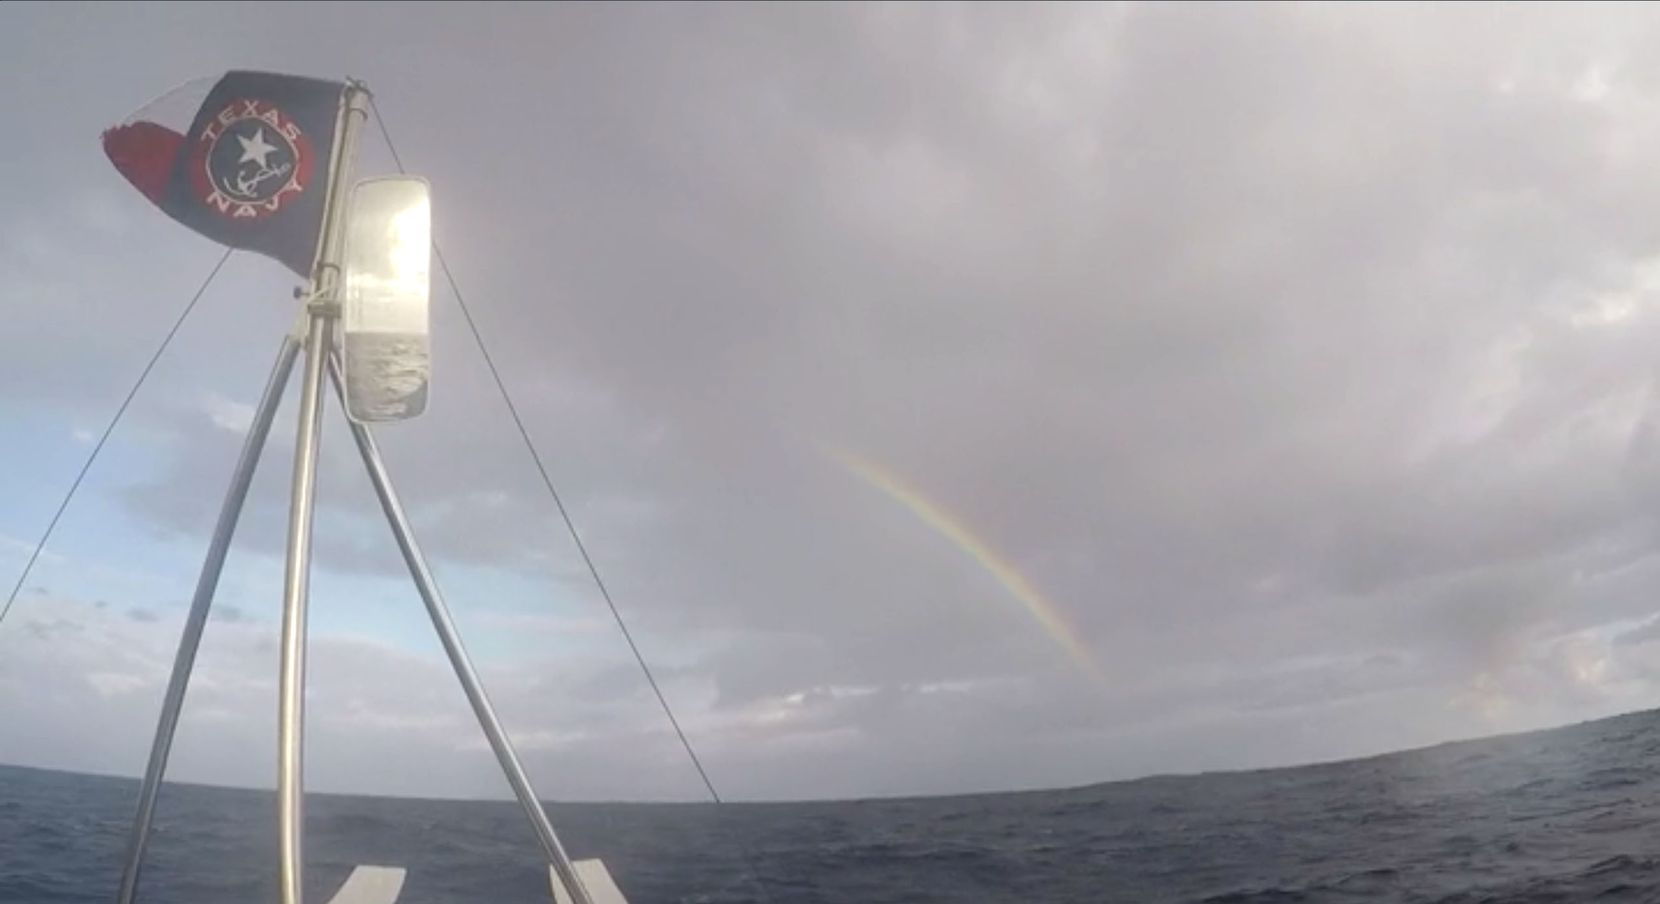 A rainbow appeared in a gray sky over the team as it rowed across the ocean.